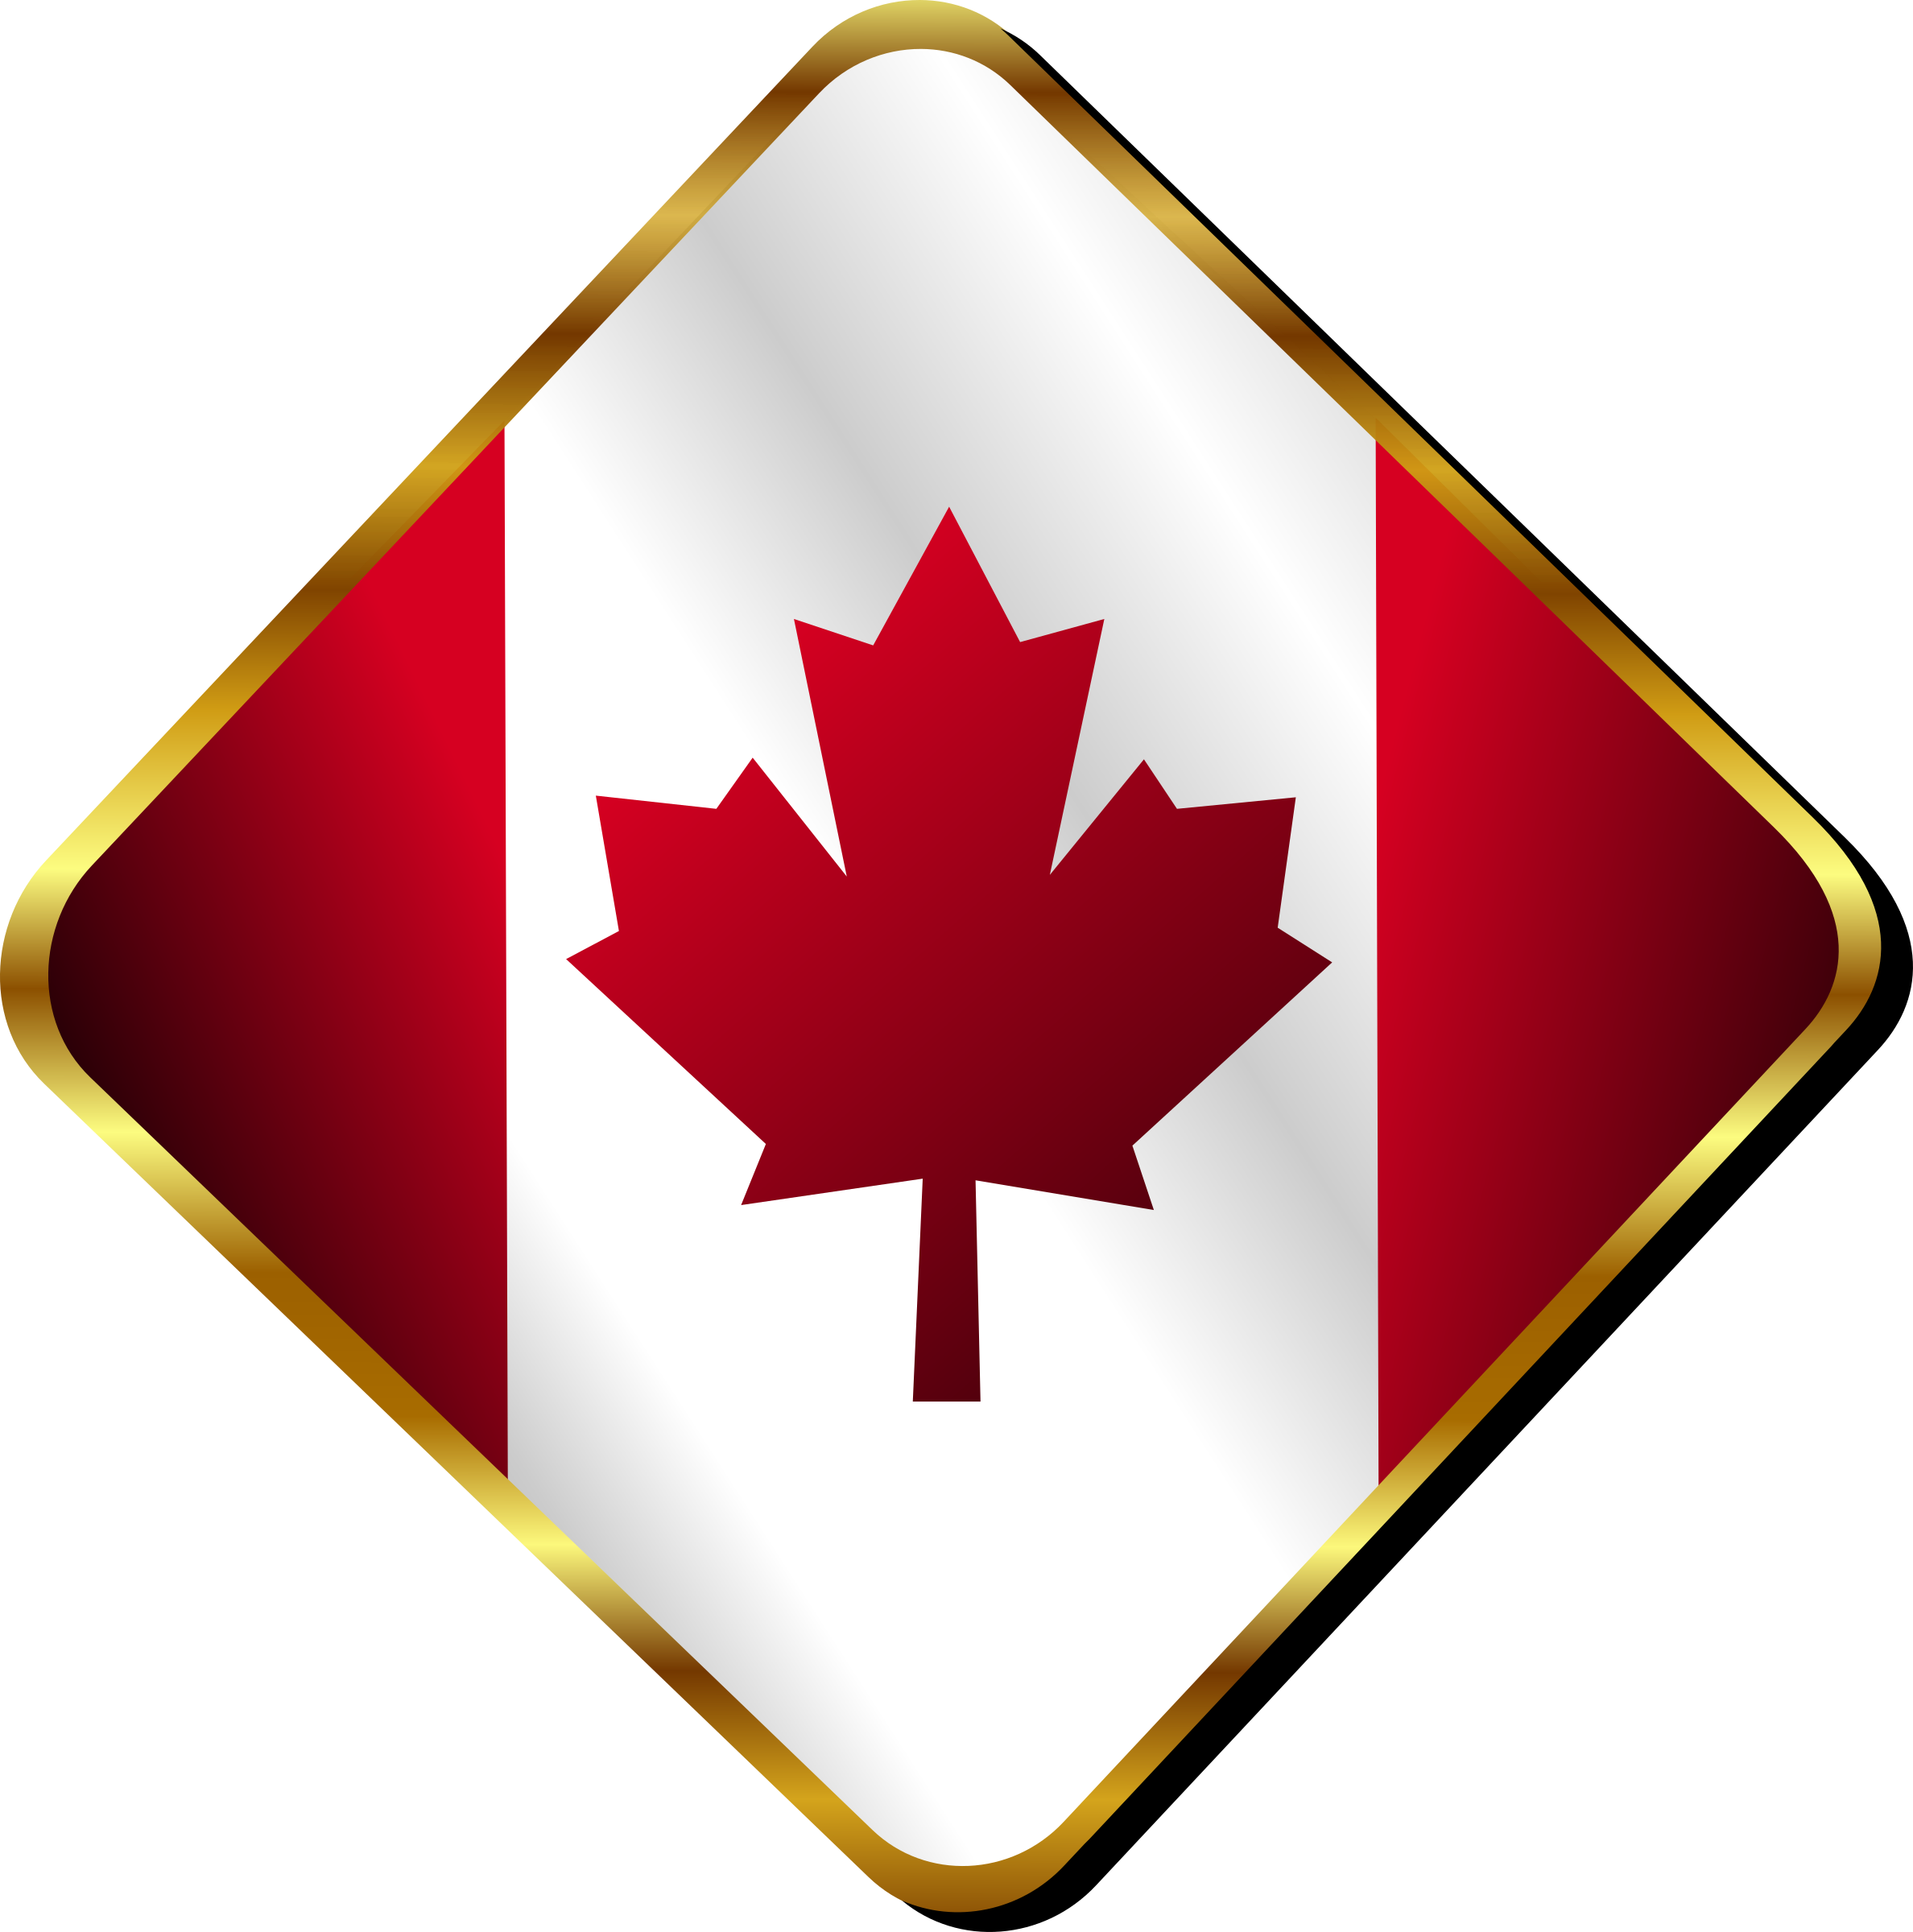 Canadian Pin by Merlin2525